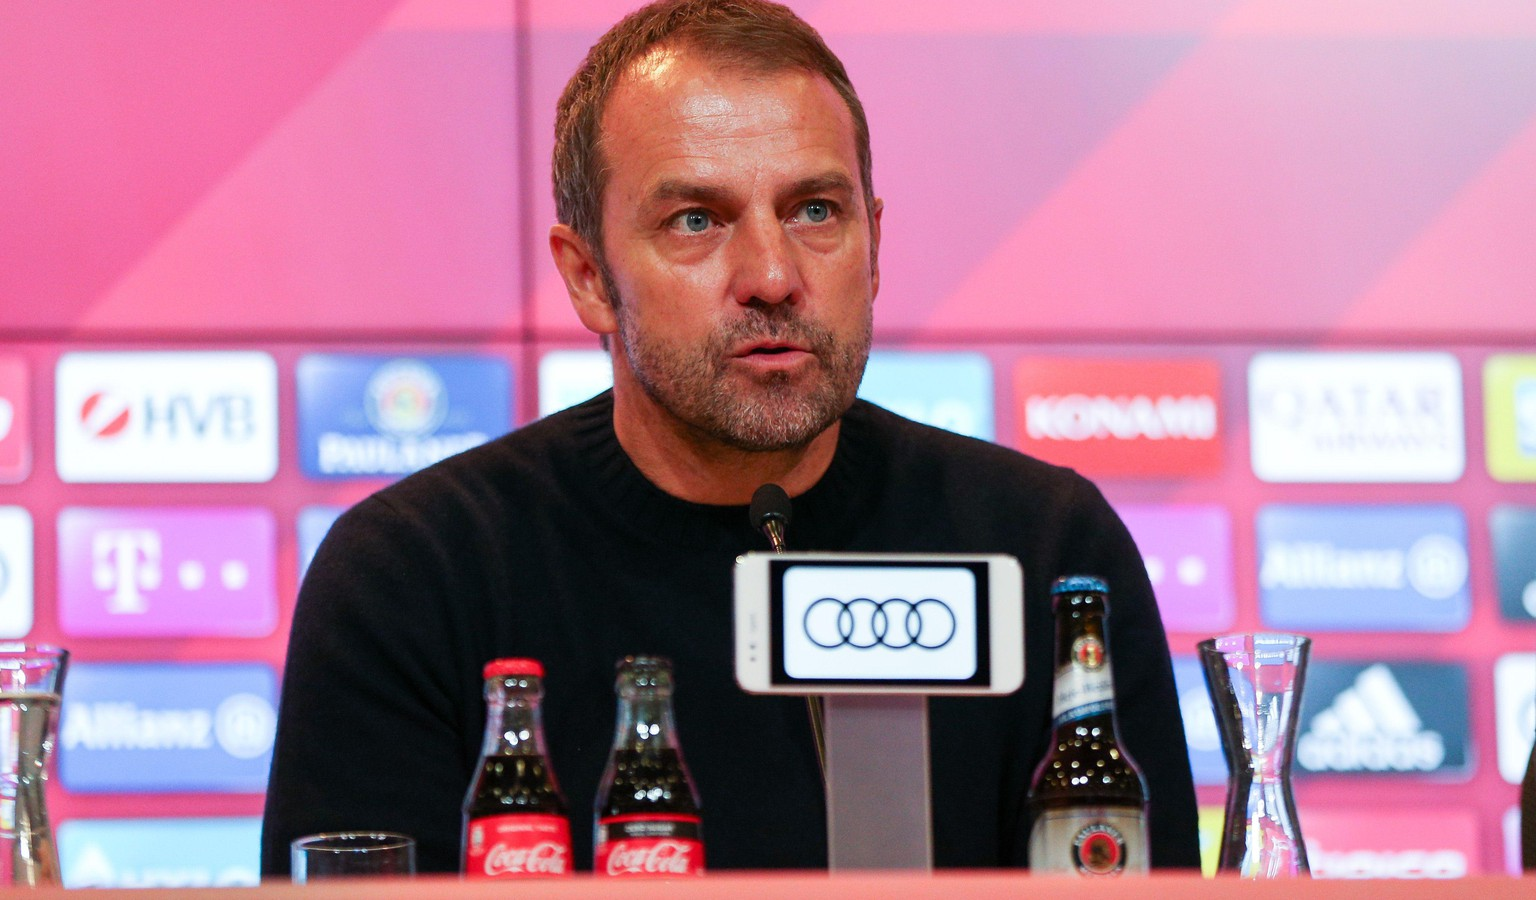 Interimstrainer Hans-Dieter Flick FC Bayern Muenchen bei der Pressekonferenz, FC Bayern Muenchen vs. Borussia Dortmund, 1.Bundesliga, 09.11.2019, DFB regulations prohibit any use of photographs as image sequences and/or quasi-video Muenchen Bayern Deutschland *** Interim coach Hans Dieter Flick FC Bayern Muenchen at the press conference, FC Bayern Muenchen vs. Borussia Dortmund, 1 Bundesliga, 09 11 2019, DFB regulations prohibit any use of photographs as image sequences and or quasi video Muenchen Bayern Germany Copyright: xkolbert-press/ChristianxKolbertx